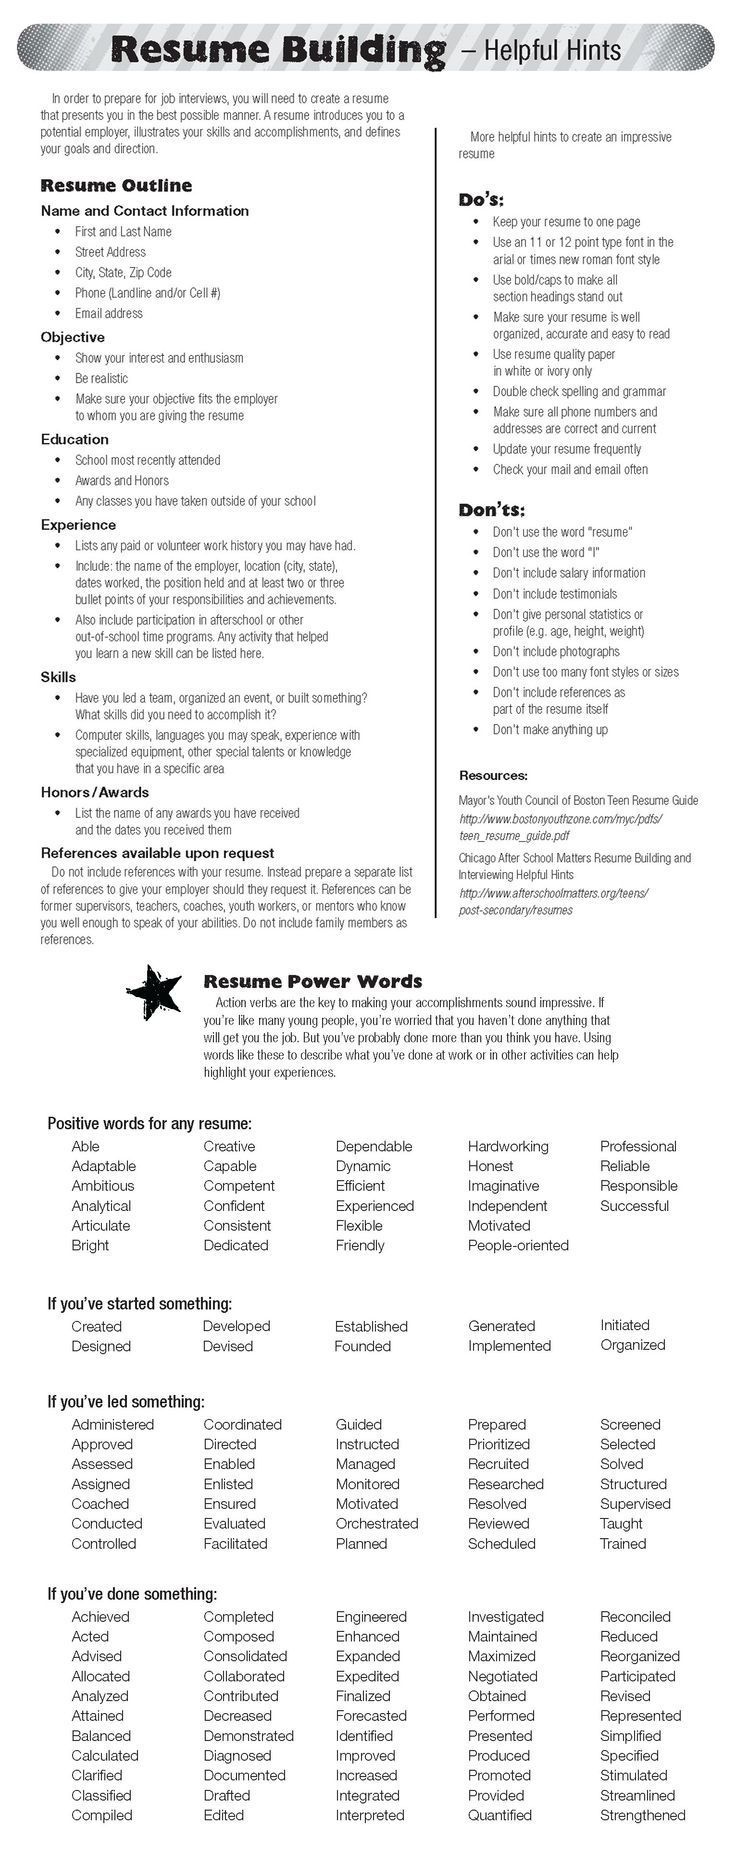 Check Out Todays Resume Building Tips Employment Jobs Resume